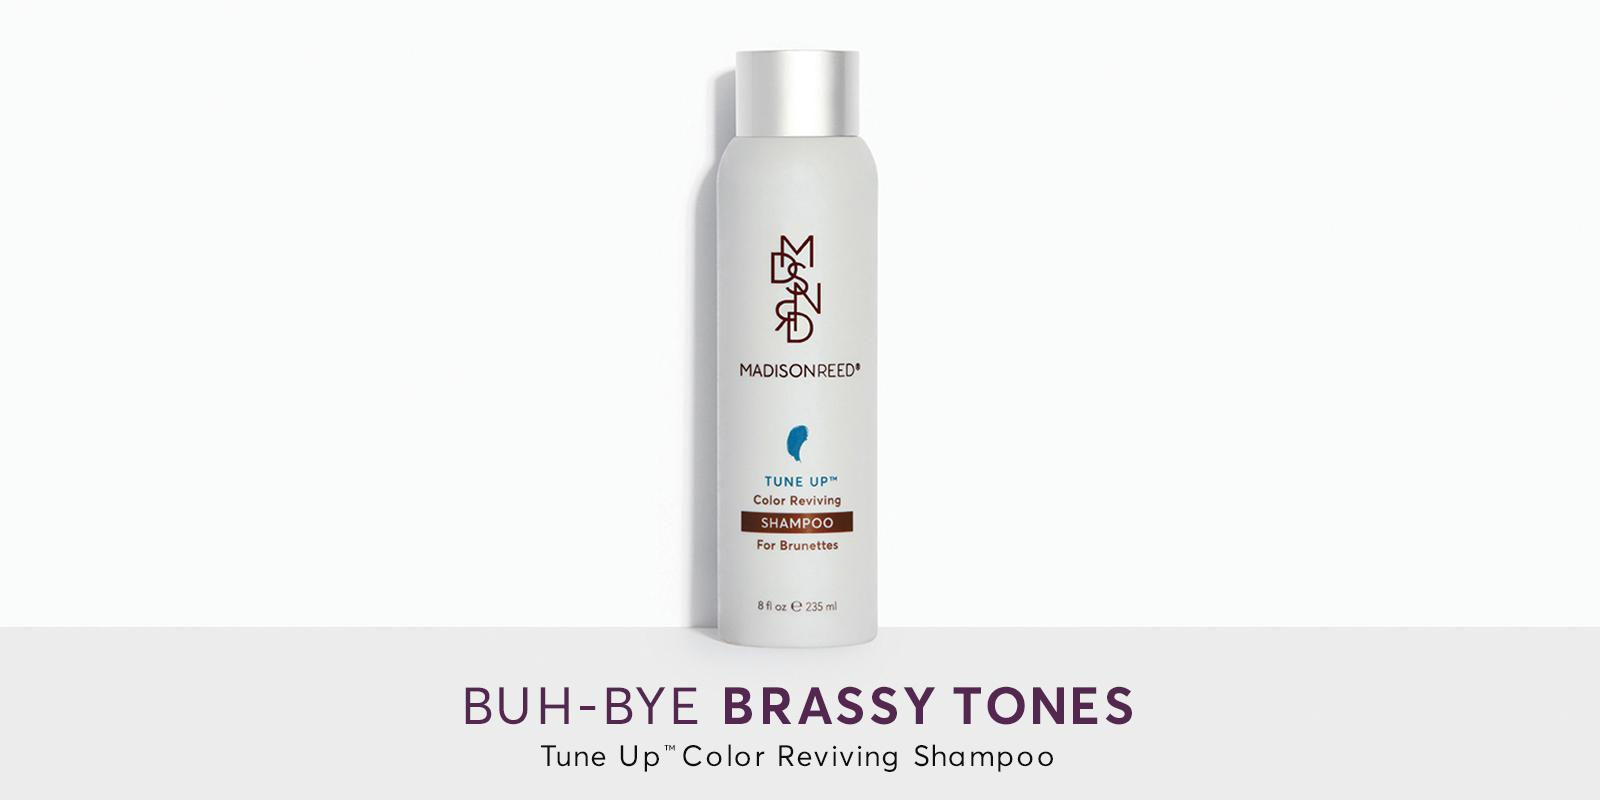 Tune Up Shampoo From Madison Reed